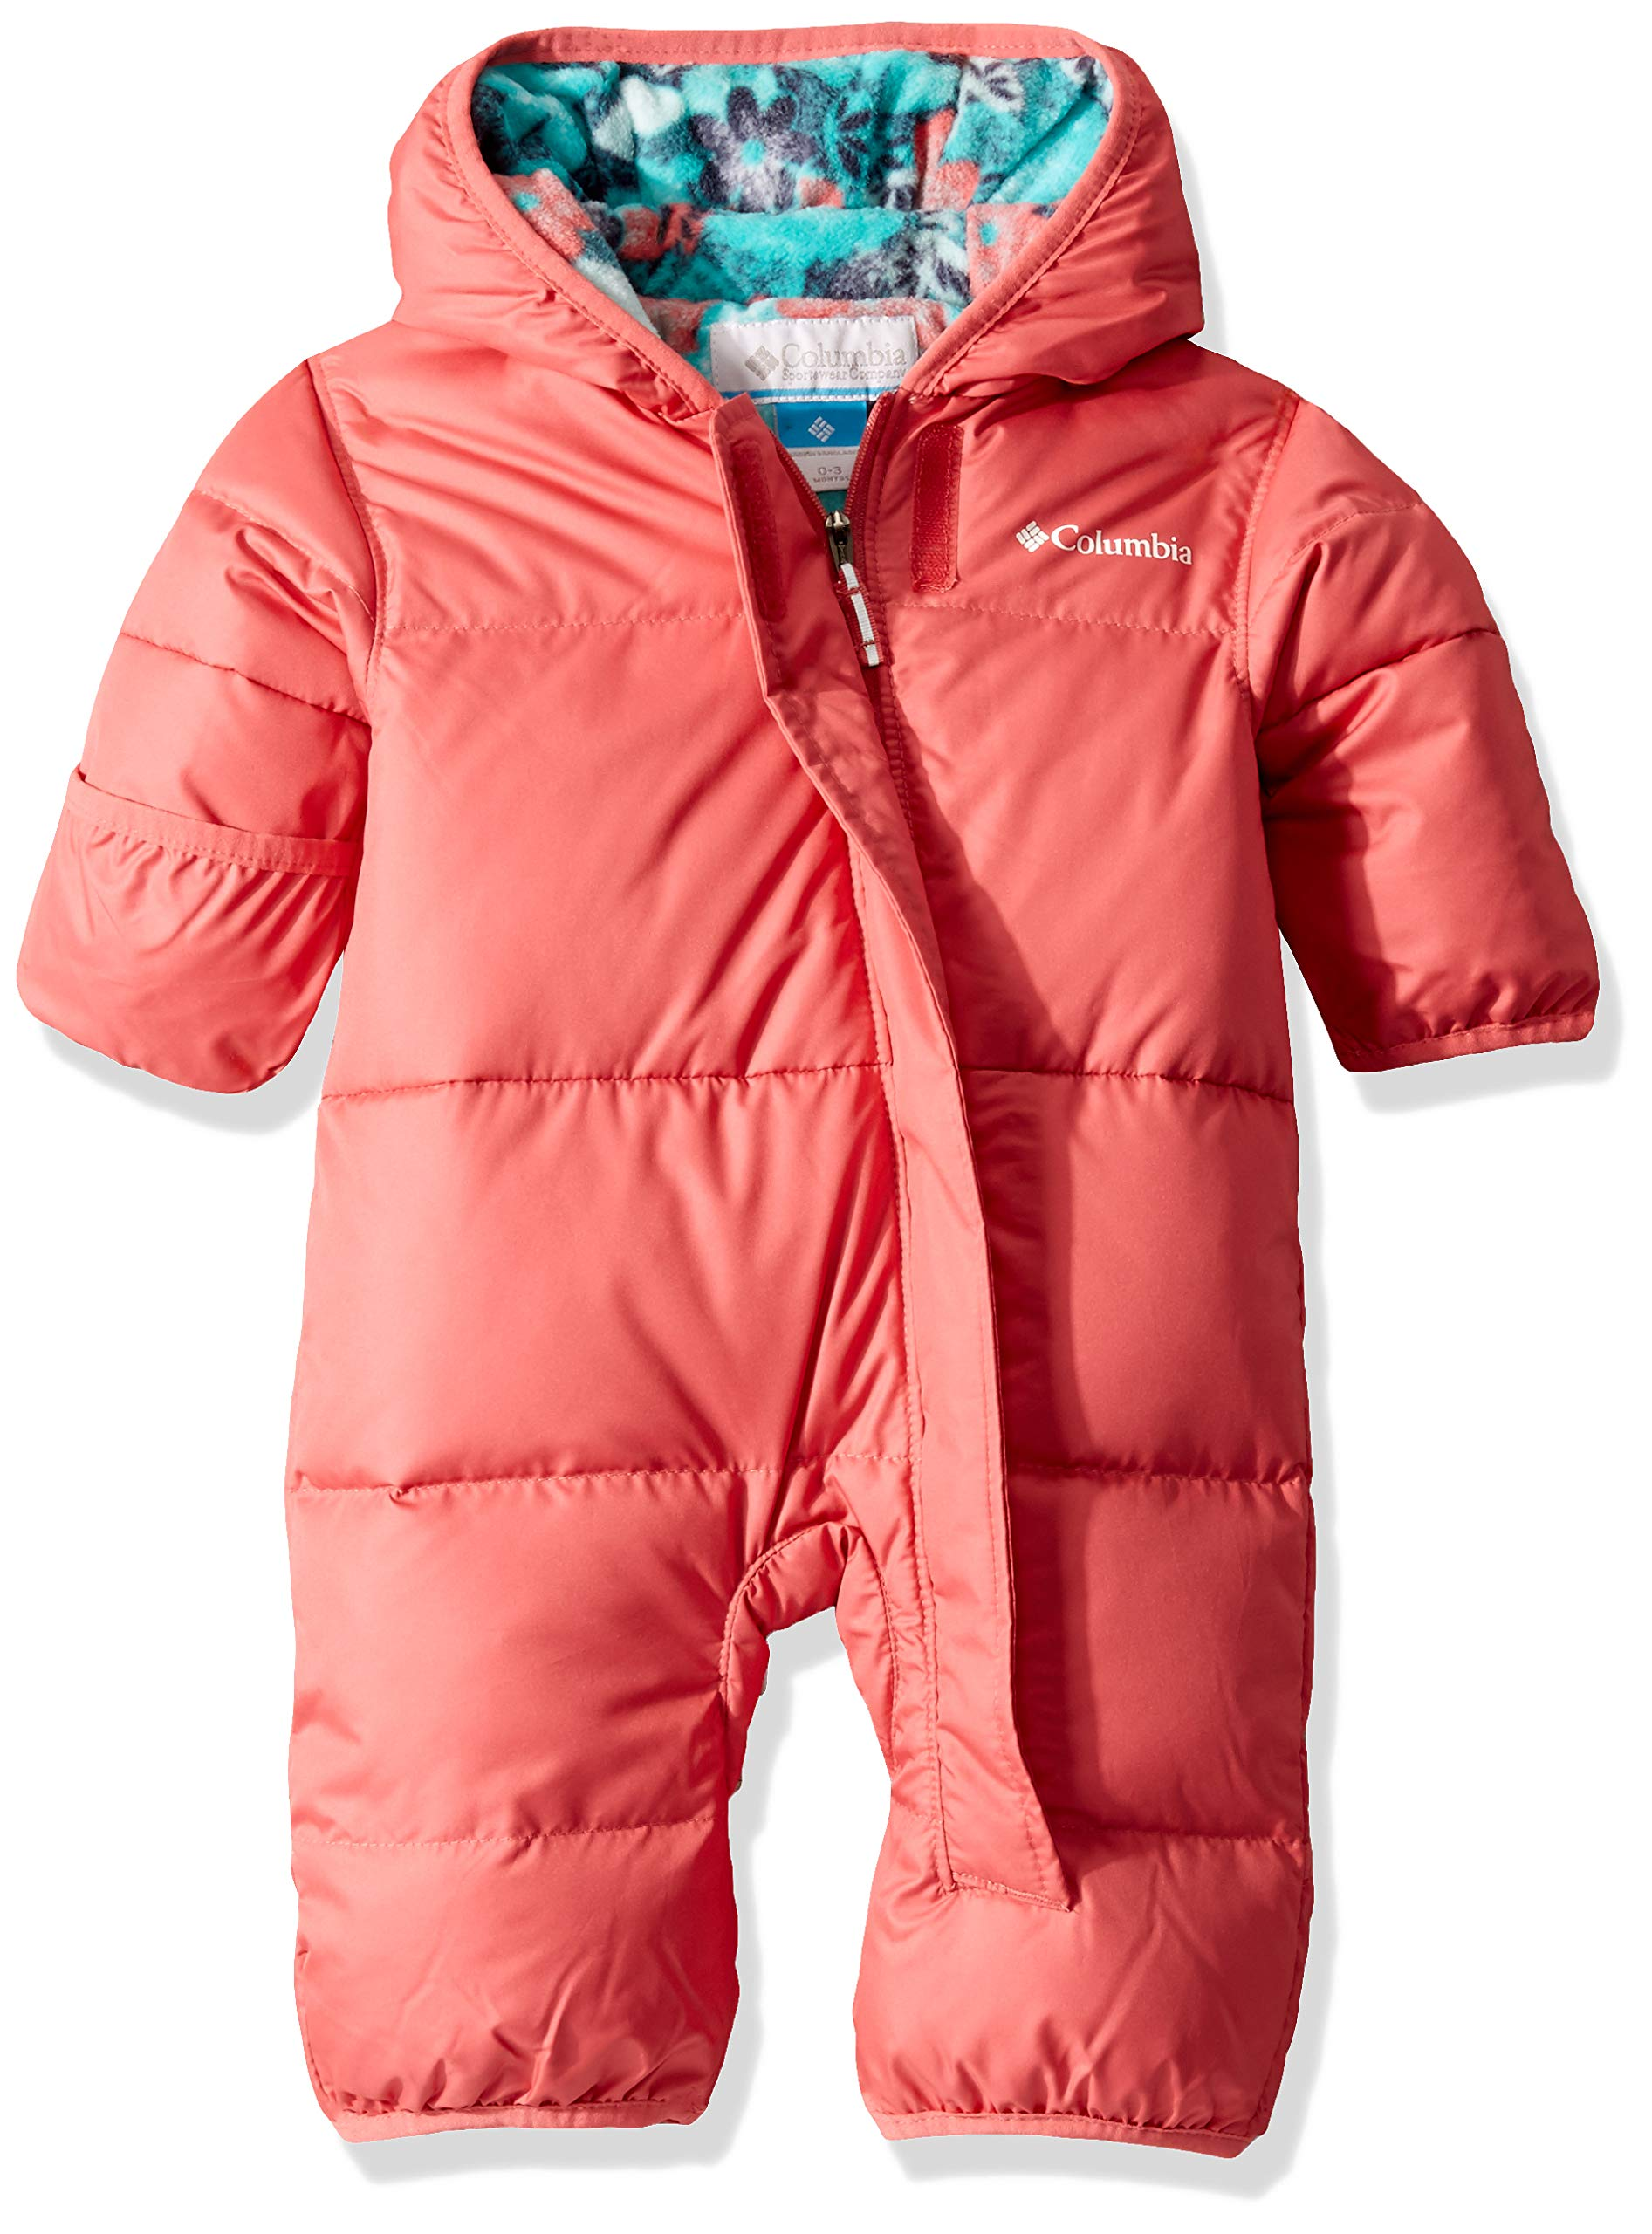 Columbia Kids' Snuggly Bunny Insulated Water-Resistant Bunting, Wild Salmon/Geyser Floral, 6/12 by Columbia